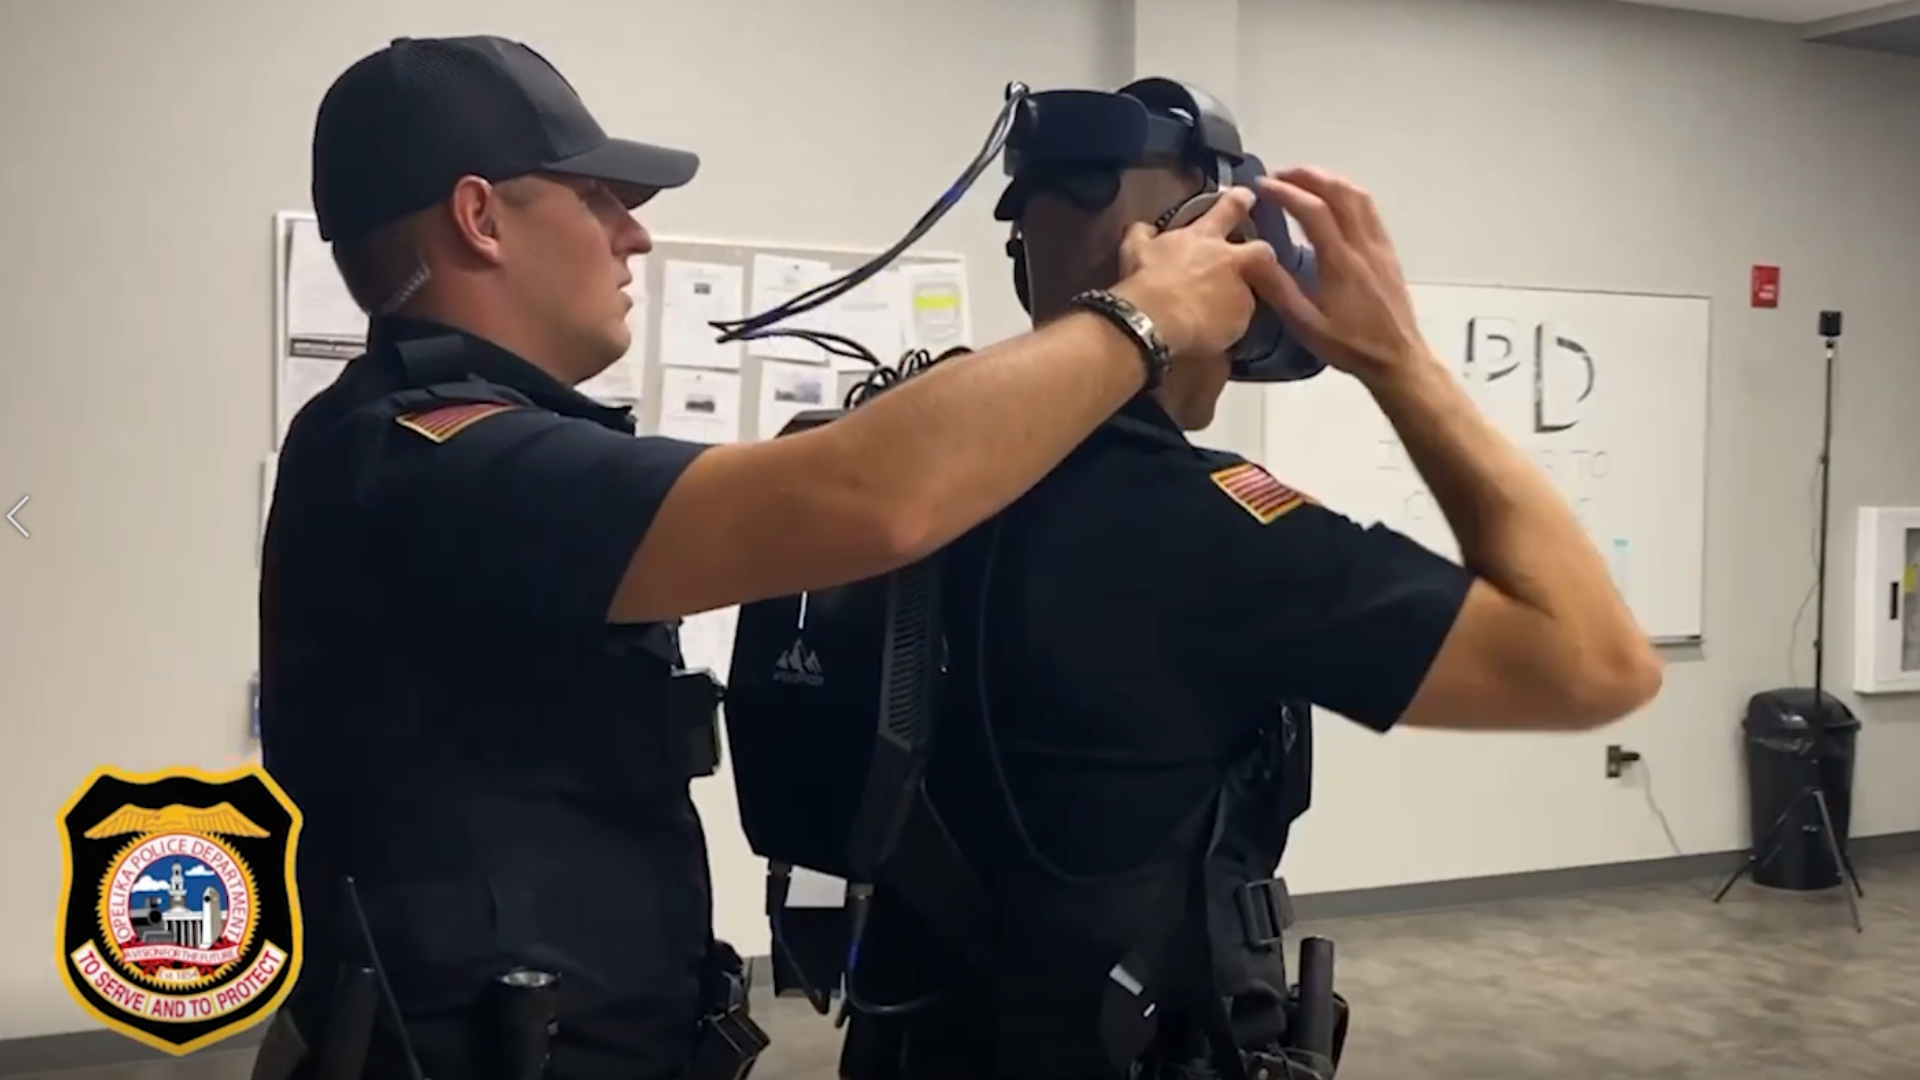 Opelika Police Officer Straps into the Apex Officer VR Training System Before a Training Scenario